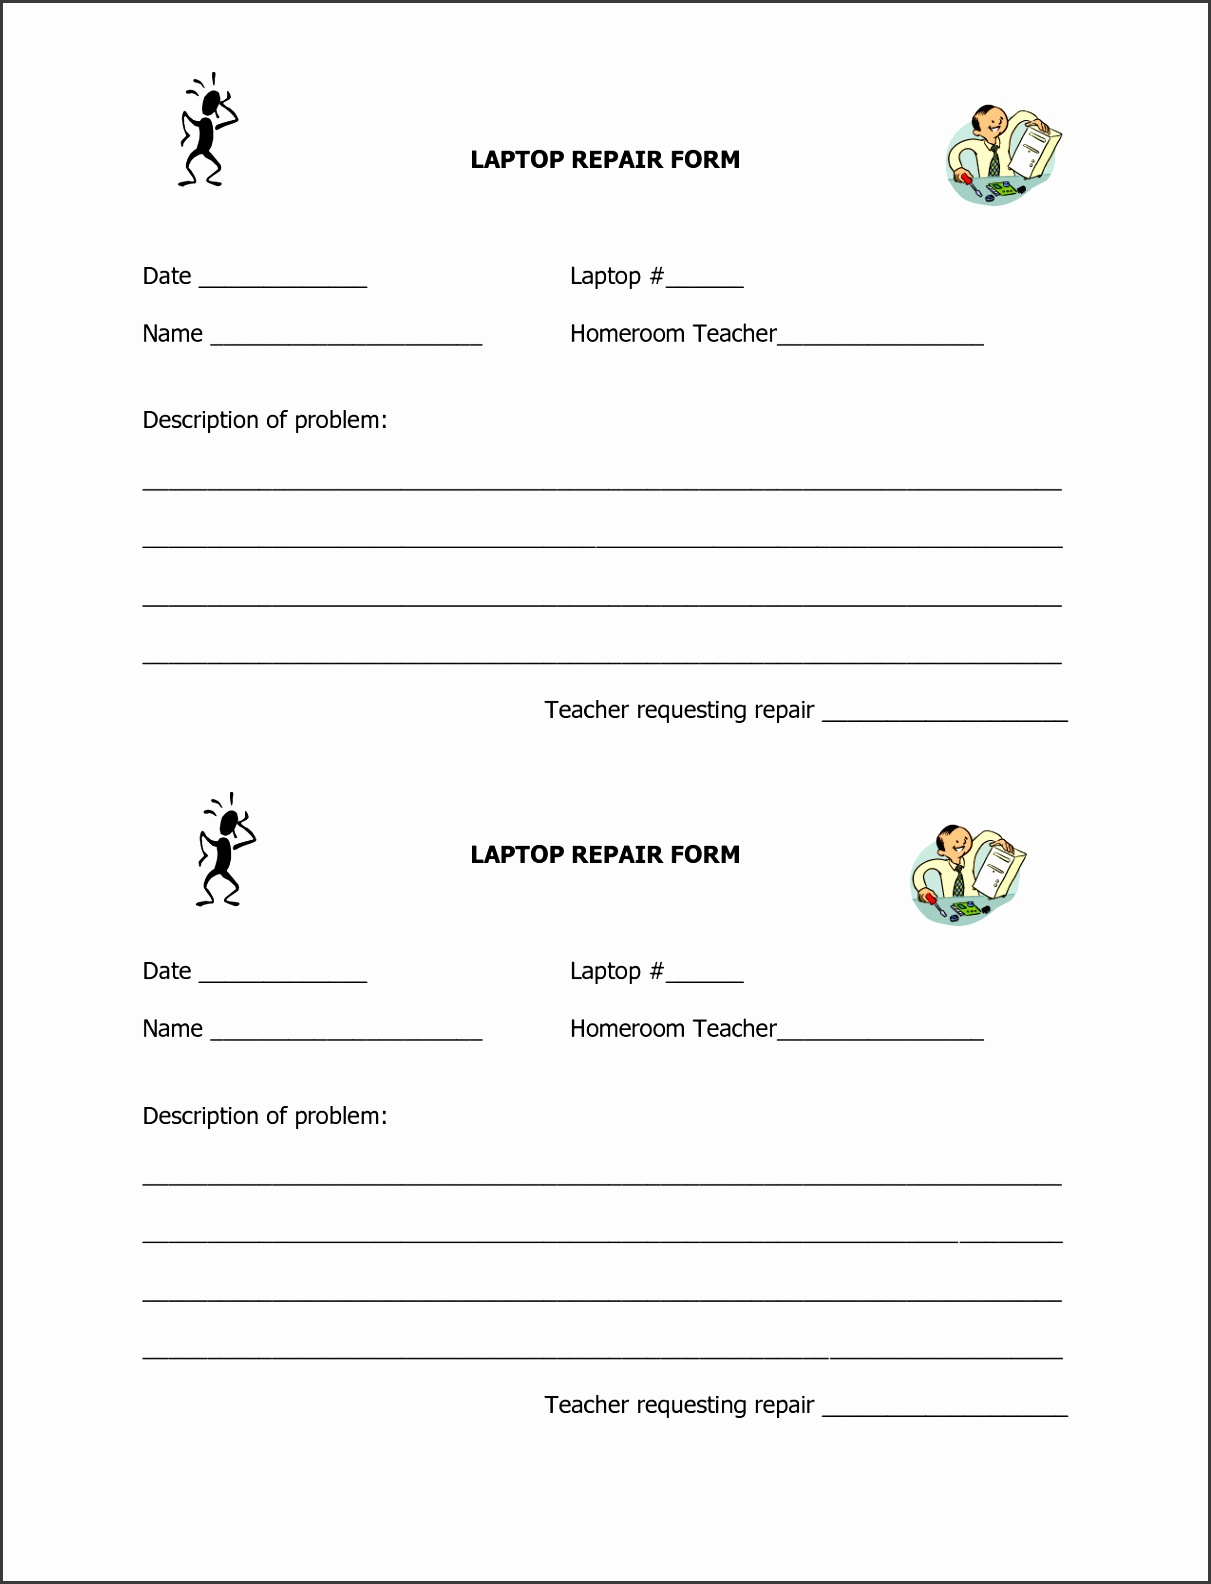 Machine repair form template pronofoot35fo Choice Image